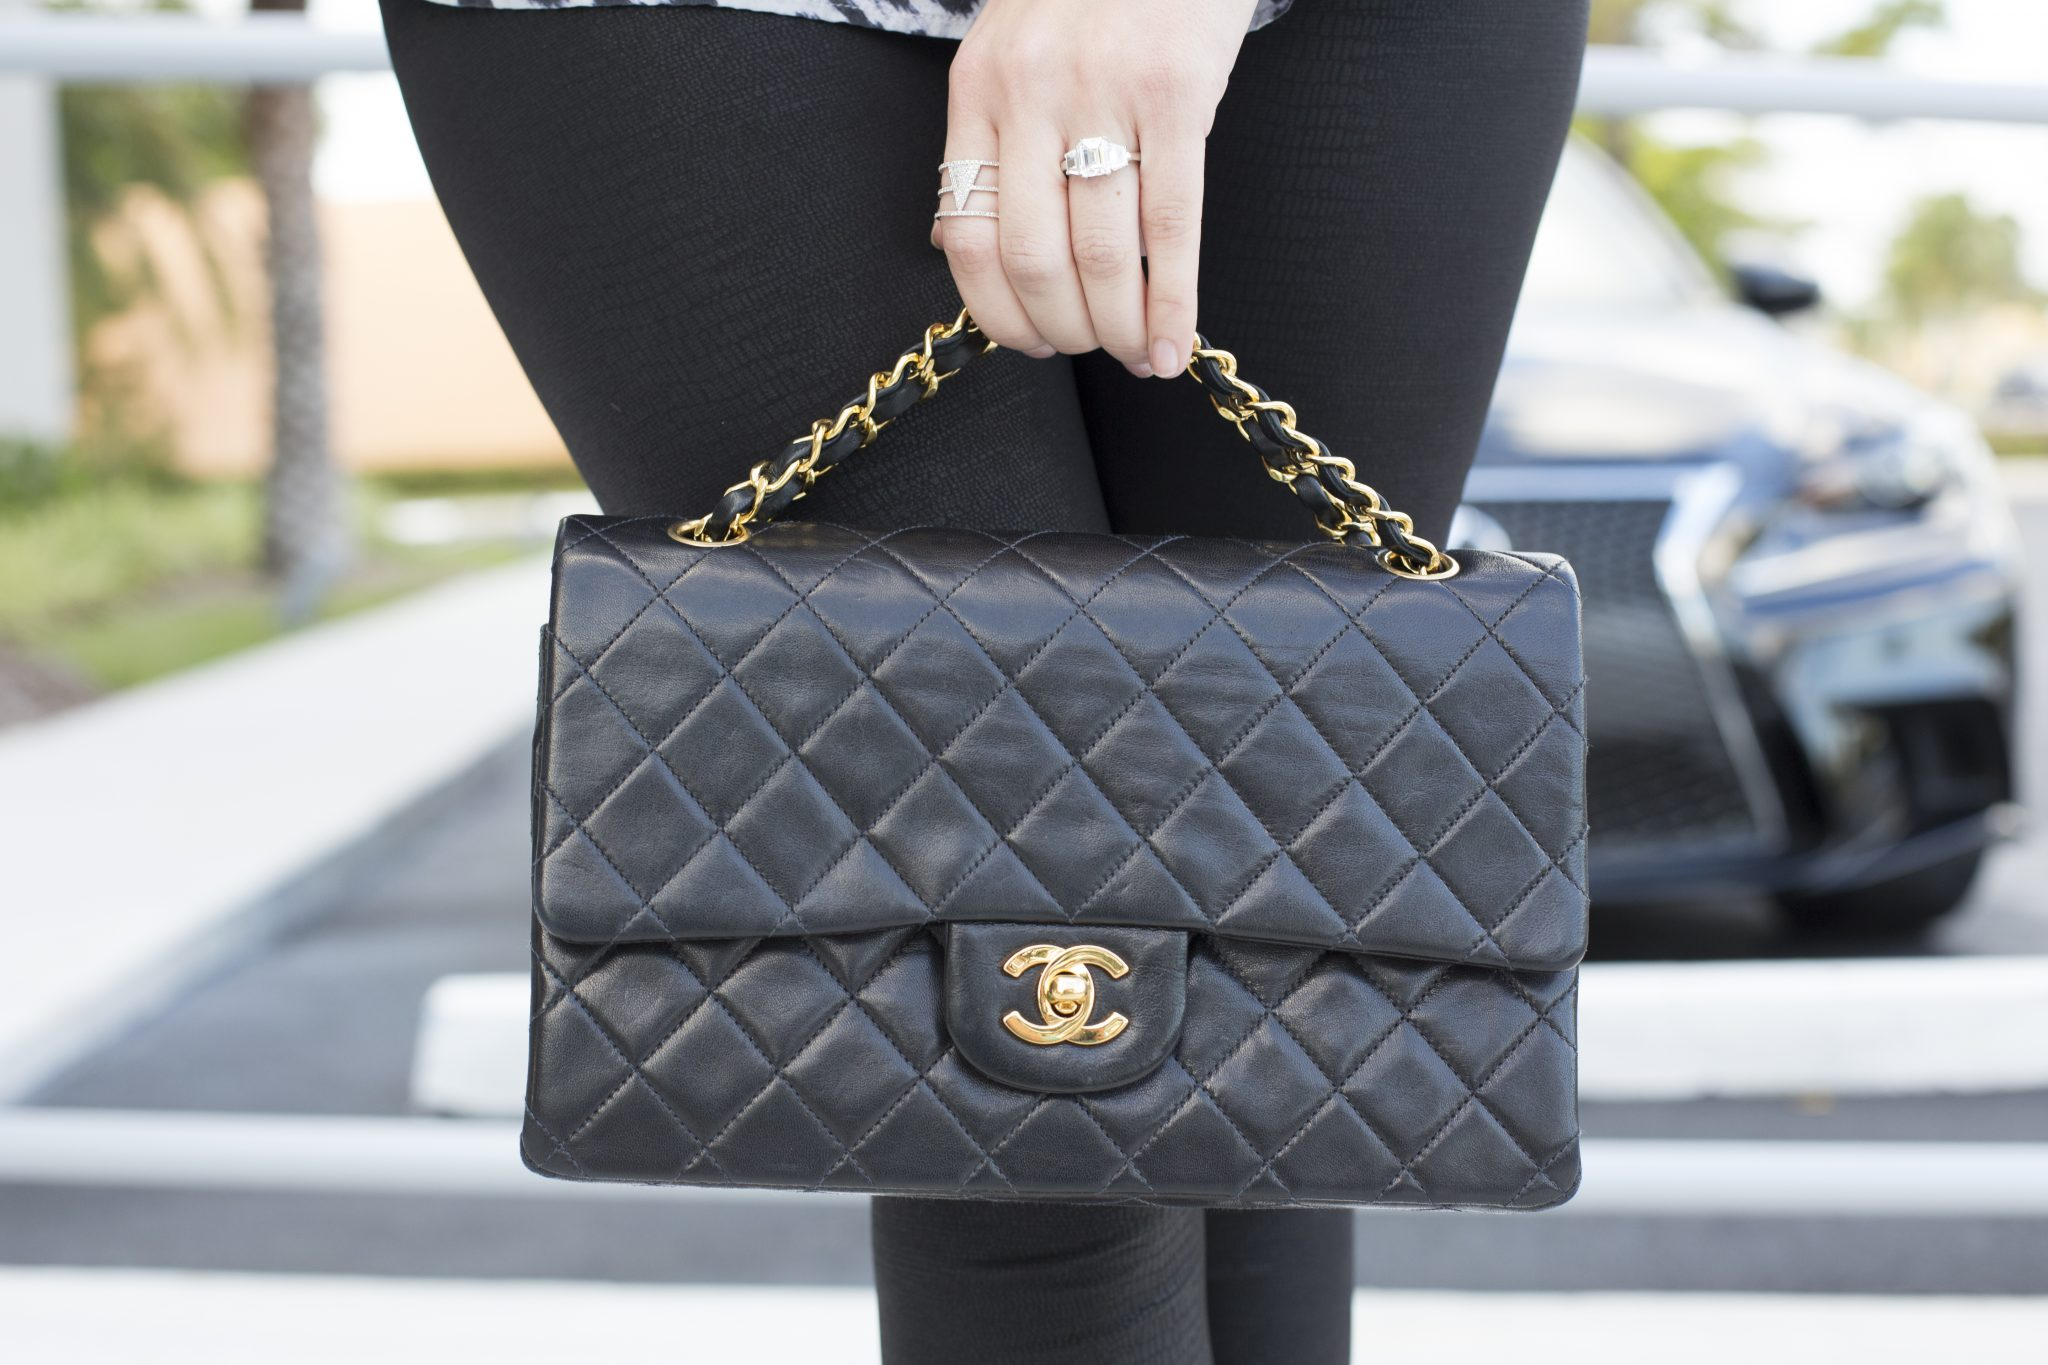 Chanel Classic Flap Bag Boca Raton Pre Owned